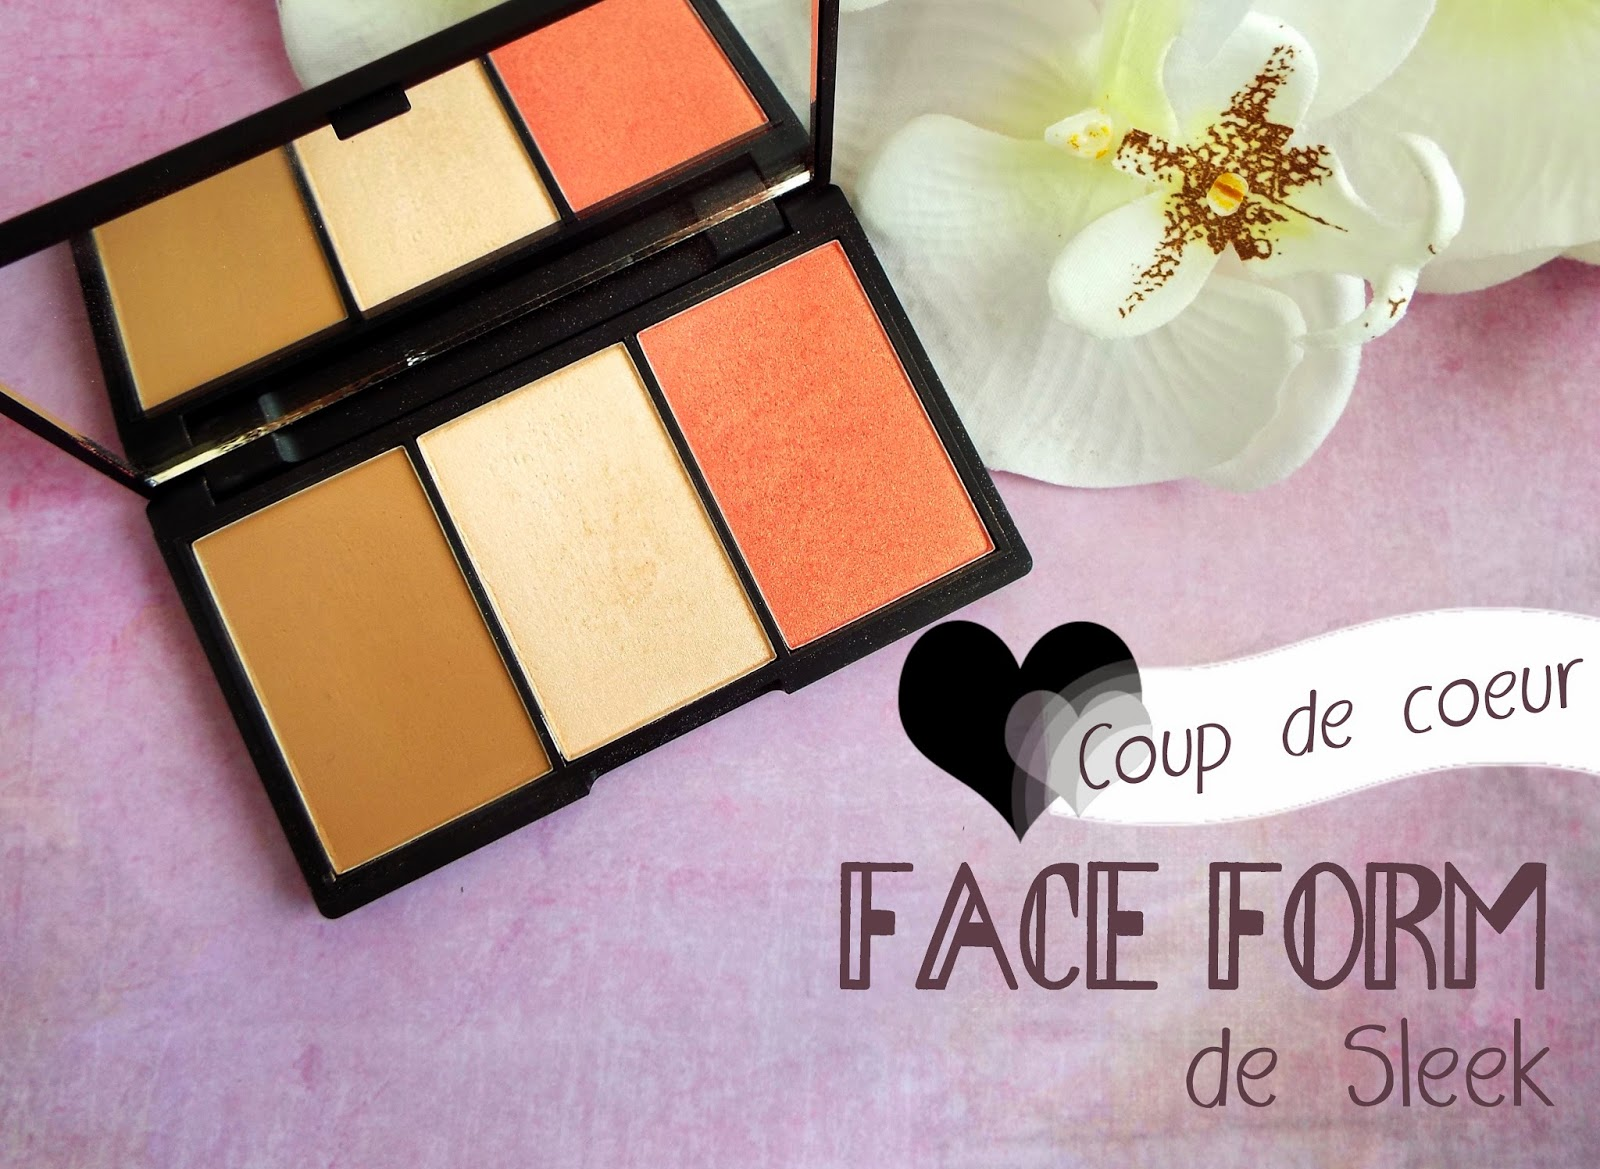 Coup de coeur : la Face Form de Sleek